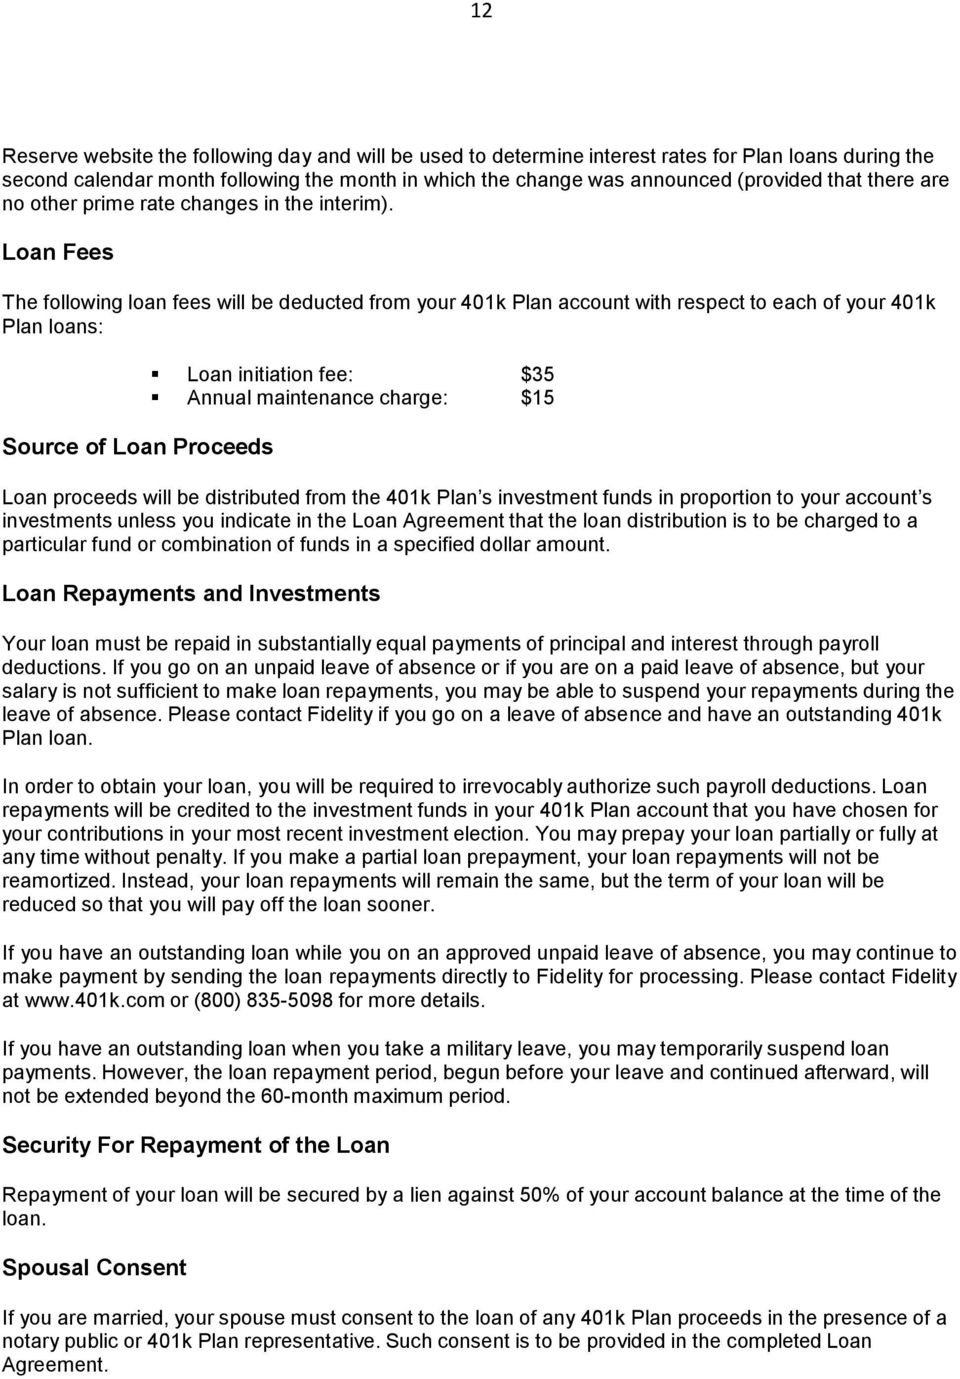 VISA 401k PLAN SUMMARY PLAN DESCRIPTION January 1, Table of